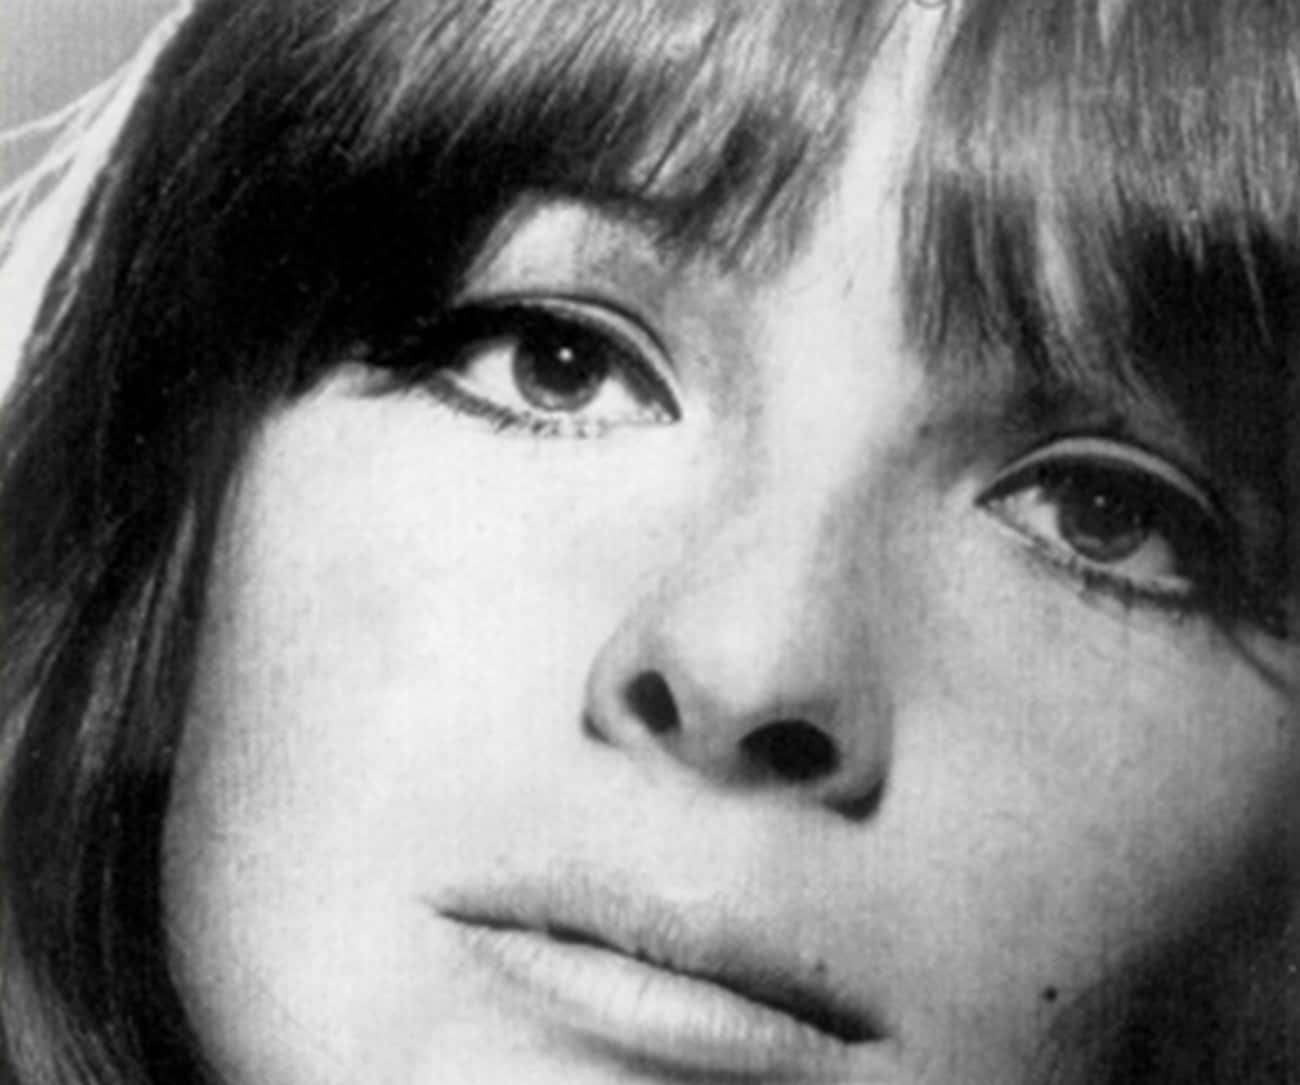 Young Diane Keaton Closeup Hea is listed (or ranked) 3 on the list 20 Pictures of Young Diane Keaton